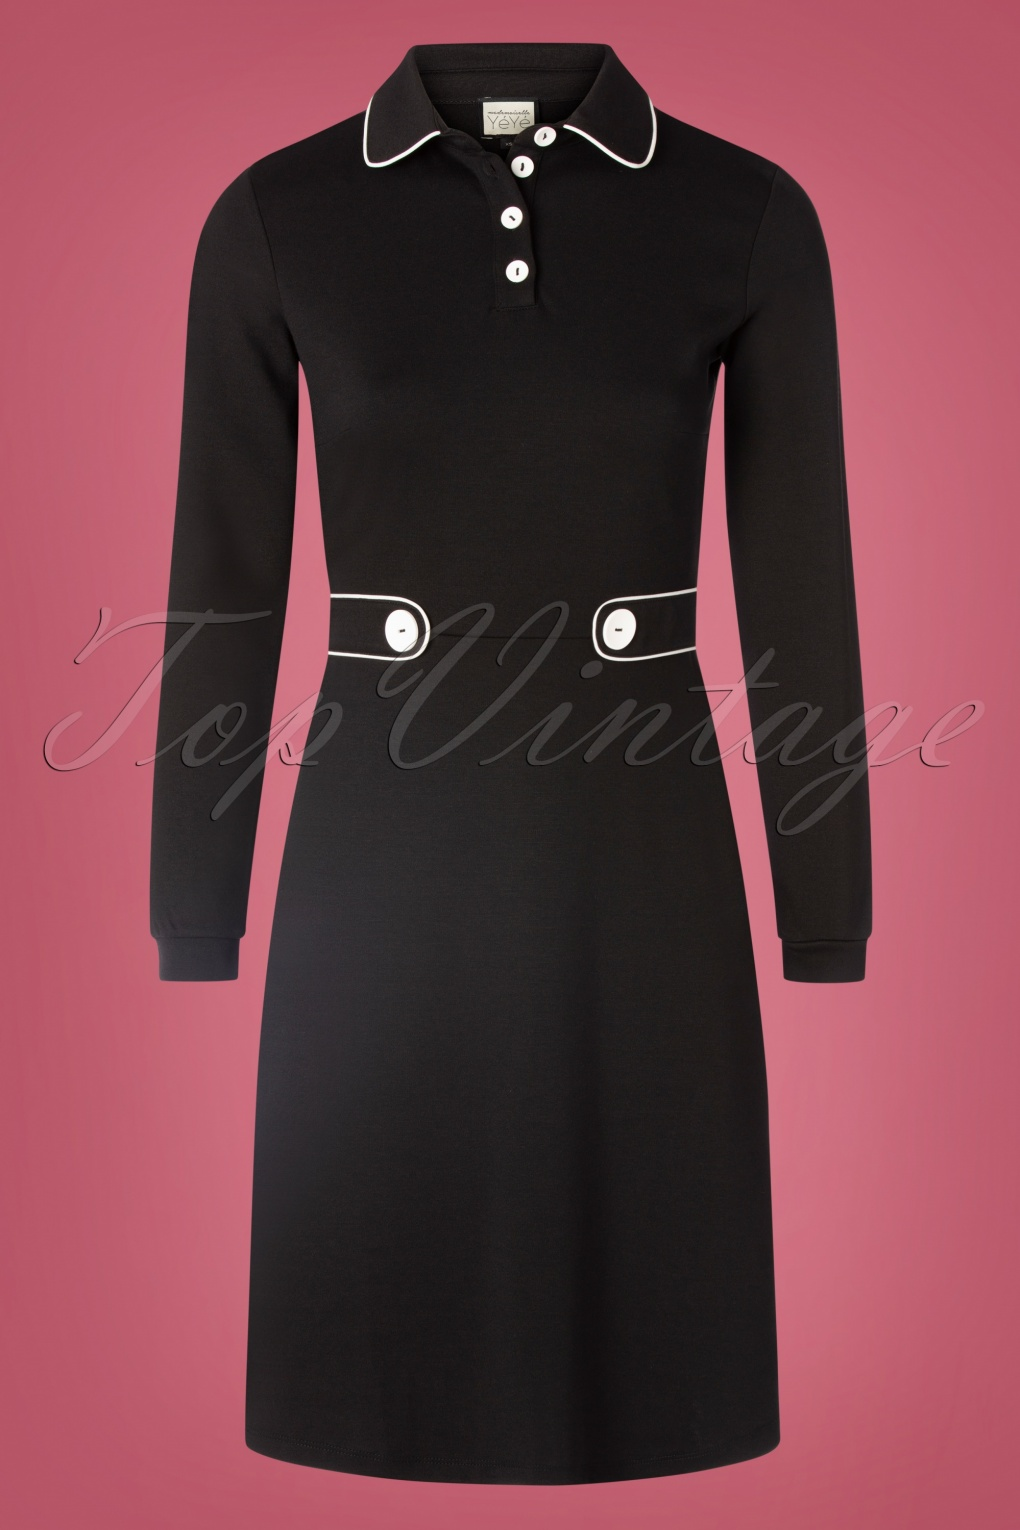 Vintage Inspired Dresses & Clothing UK 60s There She Goes Dress in Black £94.01 AT vintagedancer.com